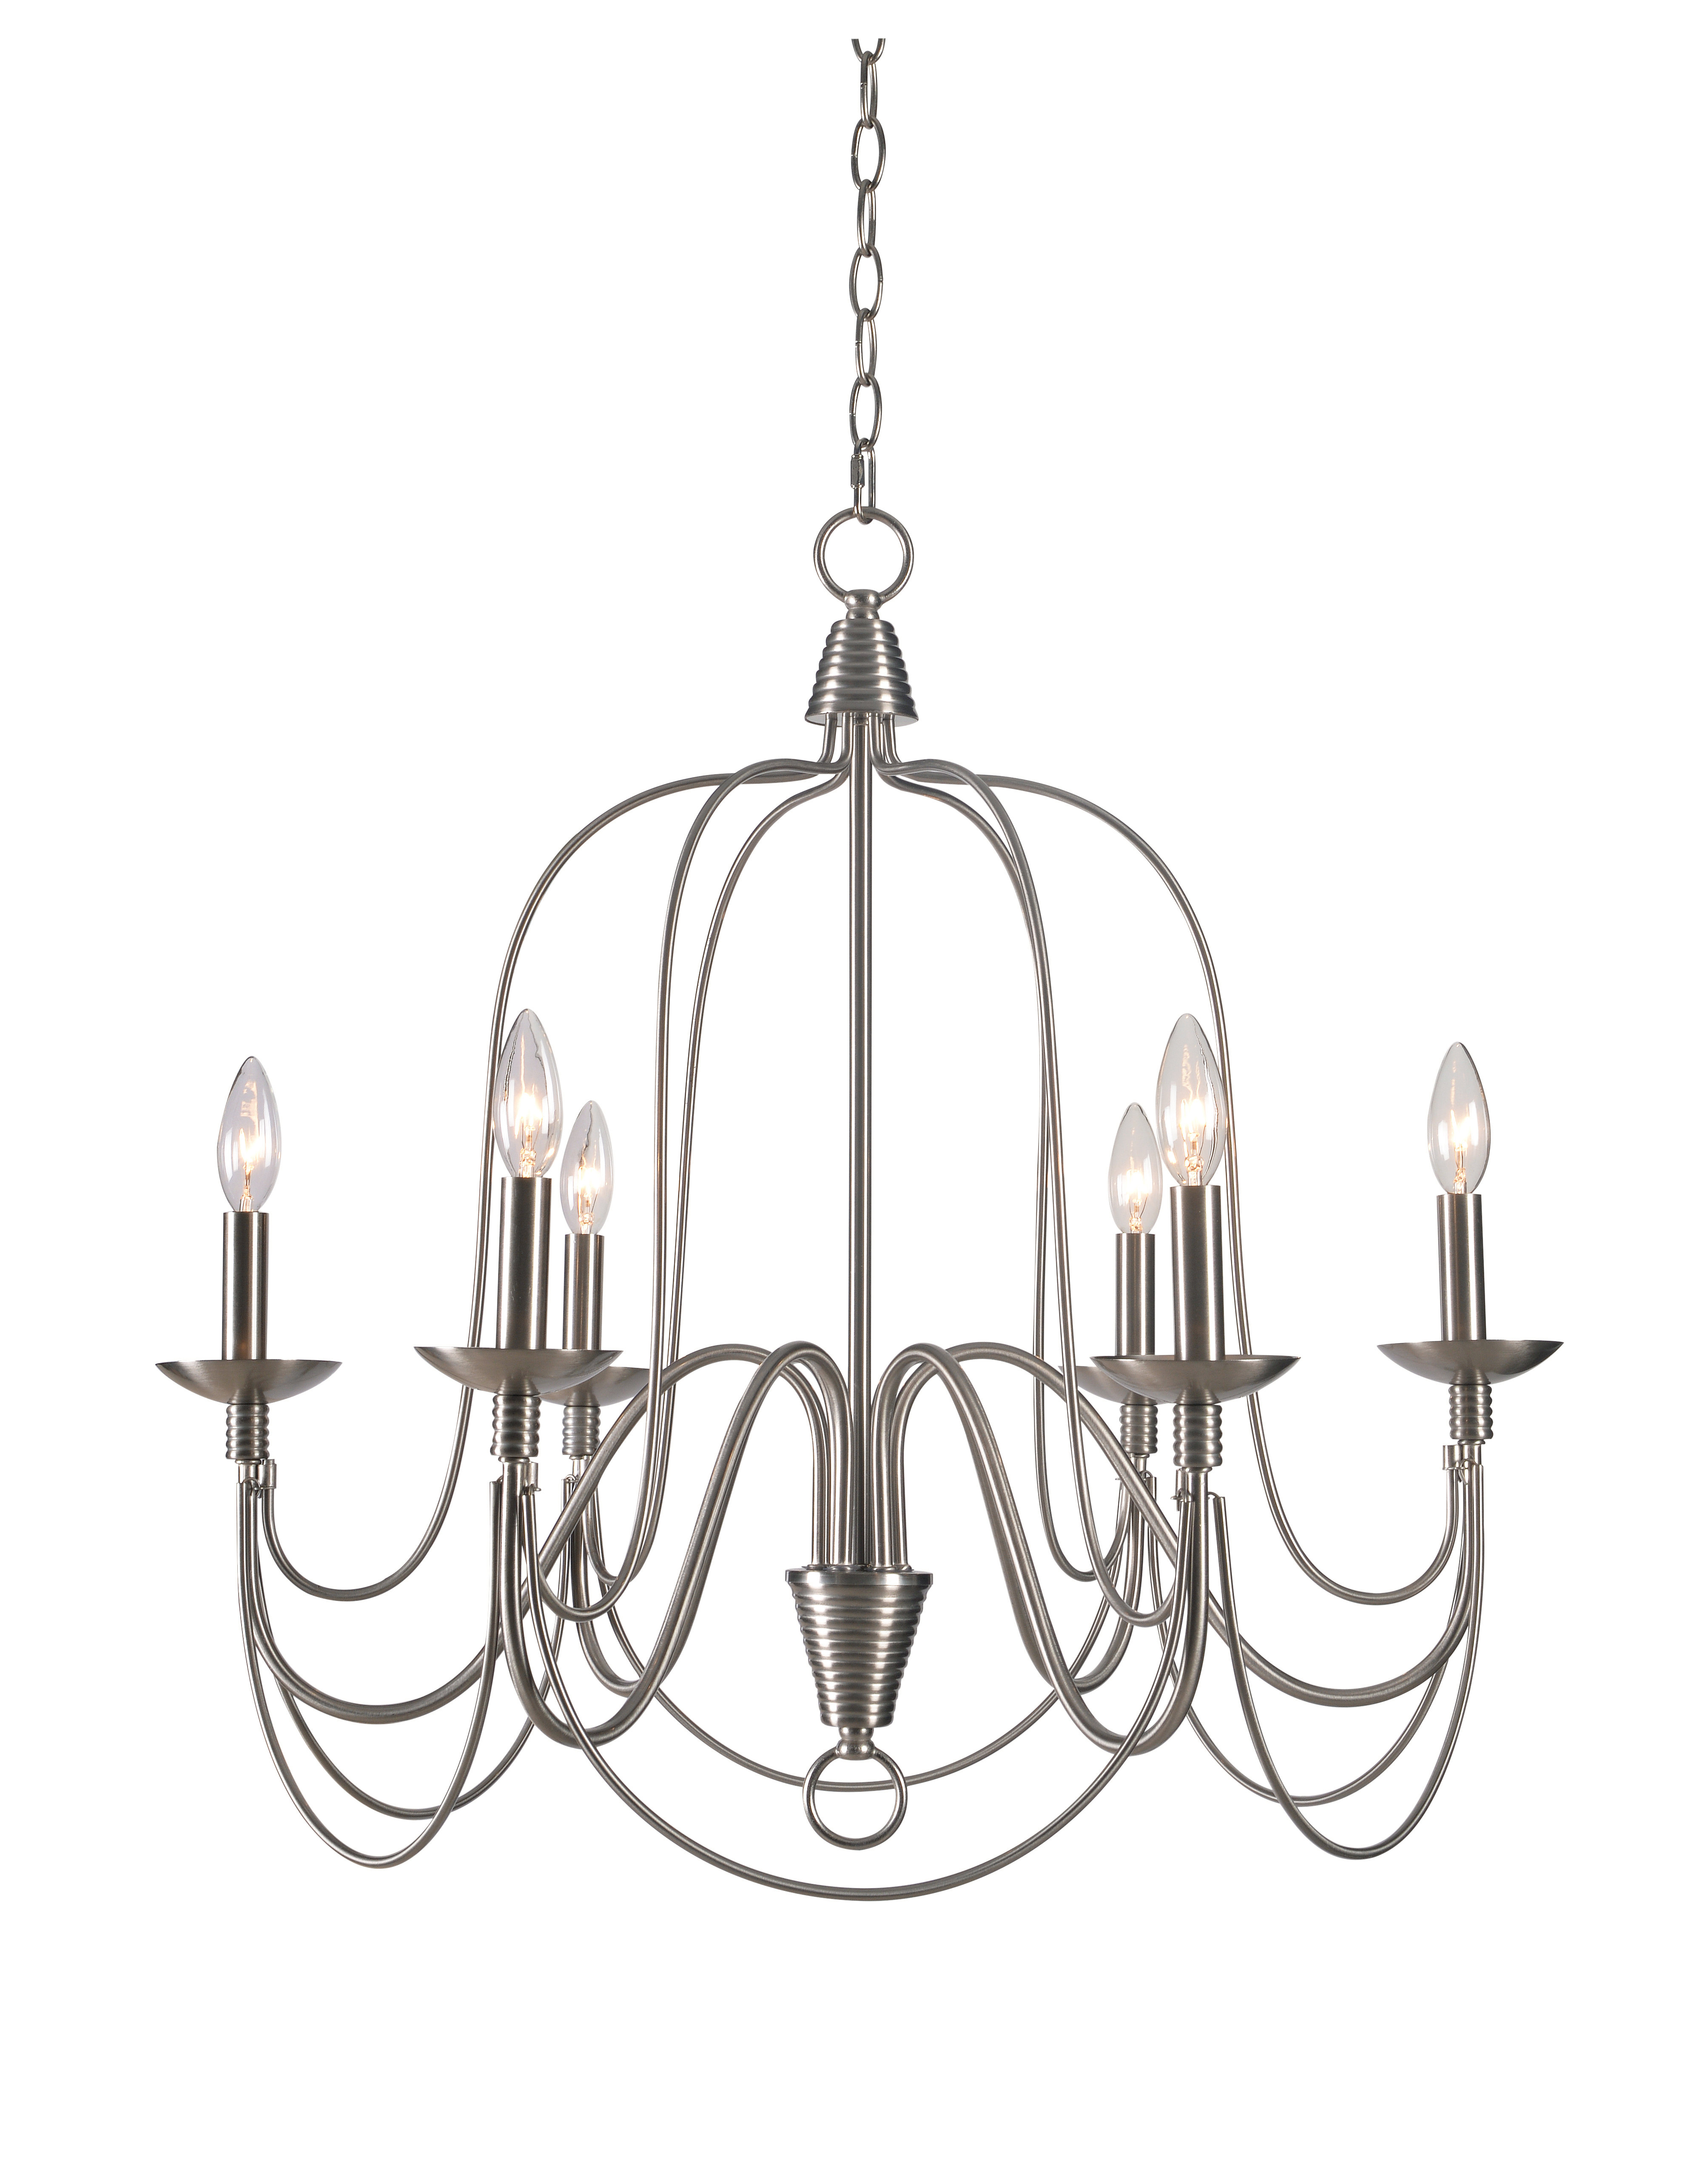 Kollman 6 Light Candle Style Chandelier Throughout Favorite Armande Candle Style Chandeliers (Gallery 17 of 20)